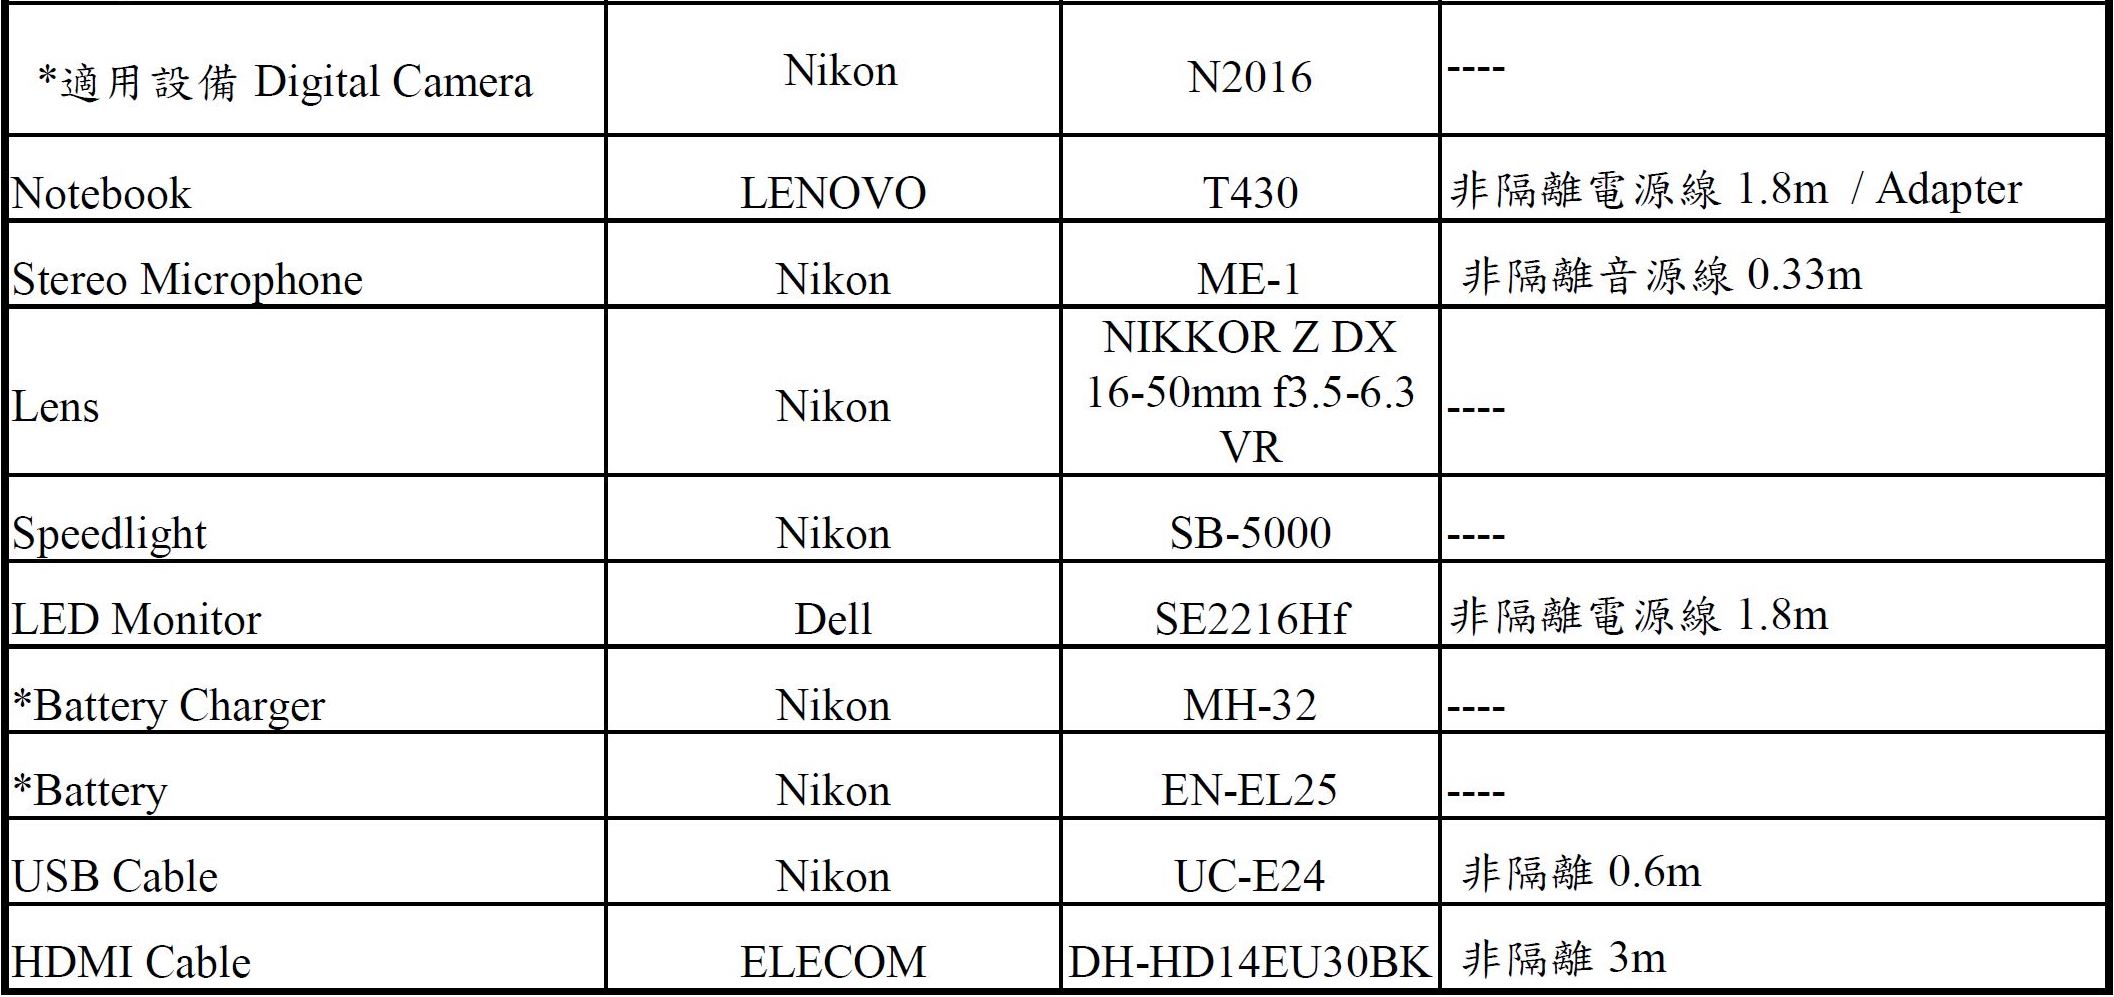 Nikon-Z30-APS-C-mirrorless-camera-rumors-N2016